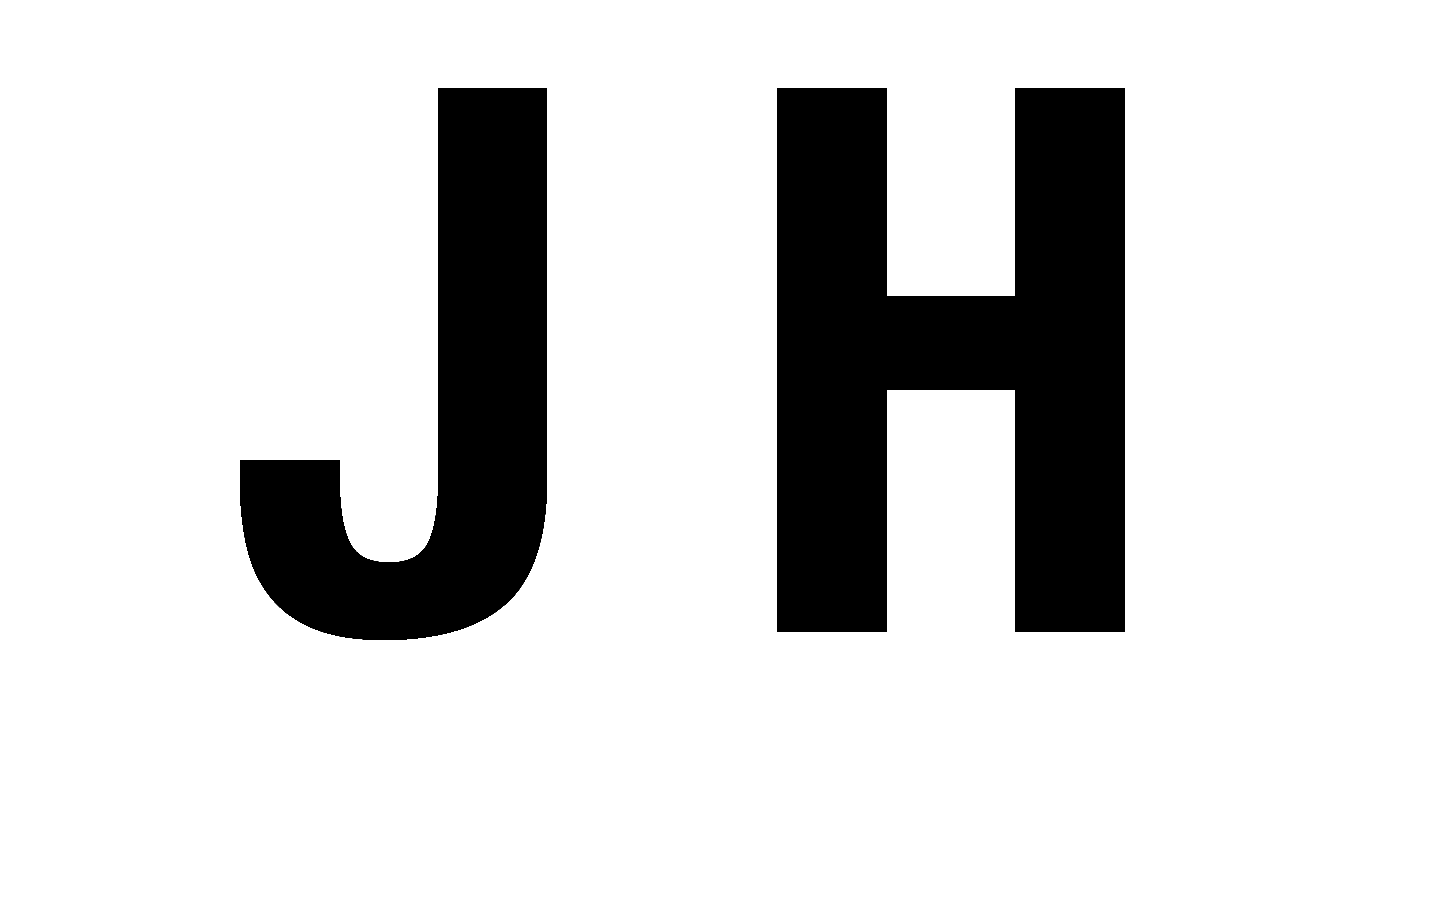 JuliyaHouse